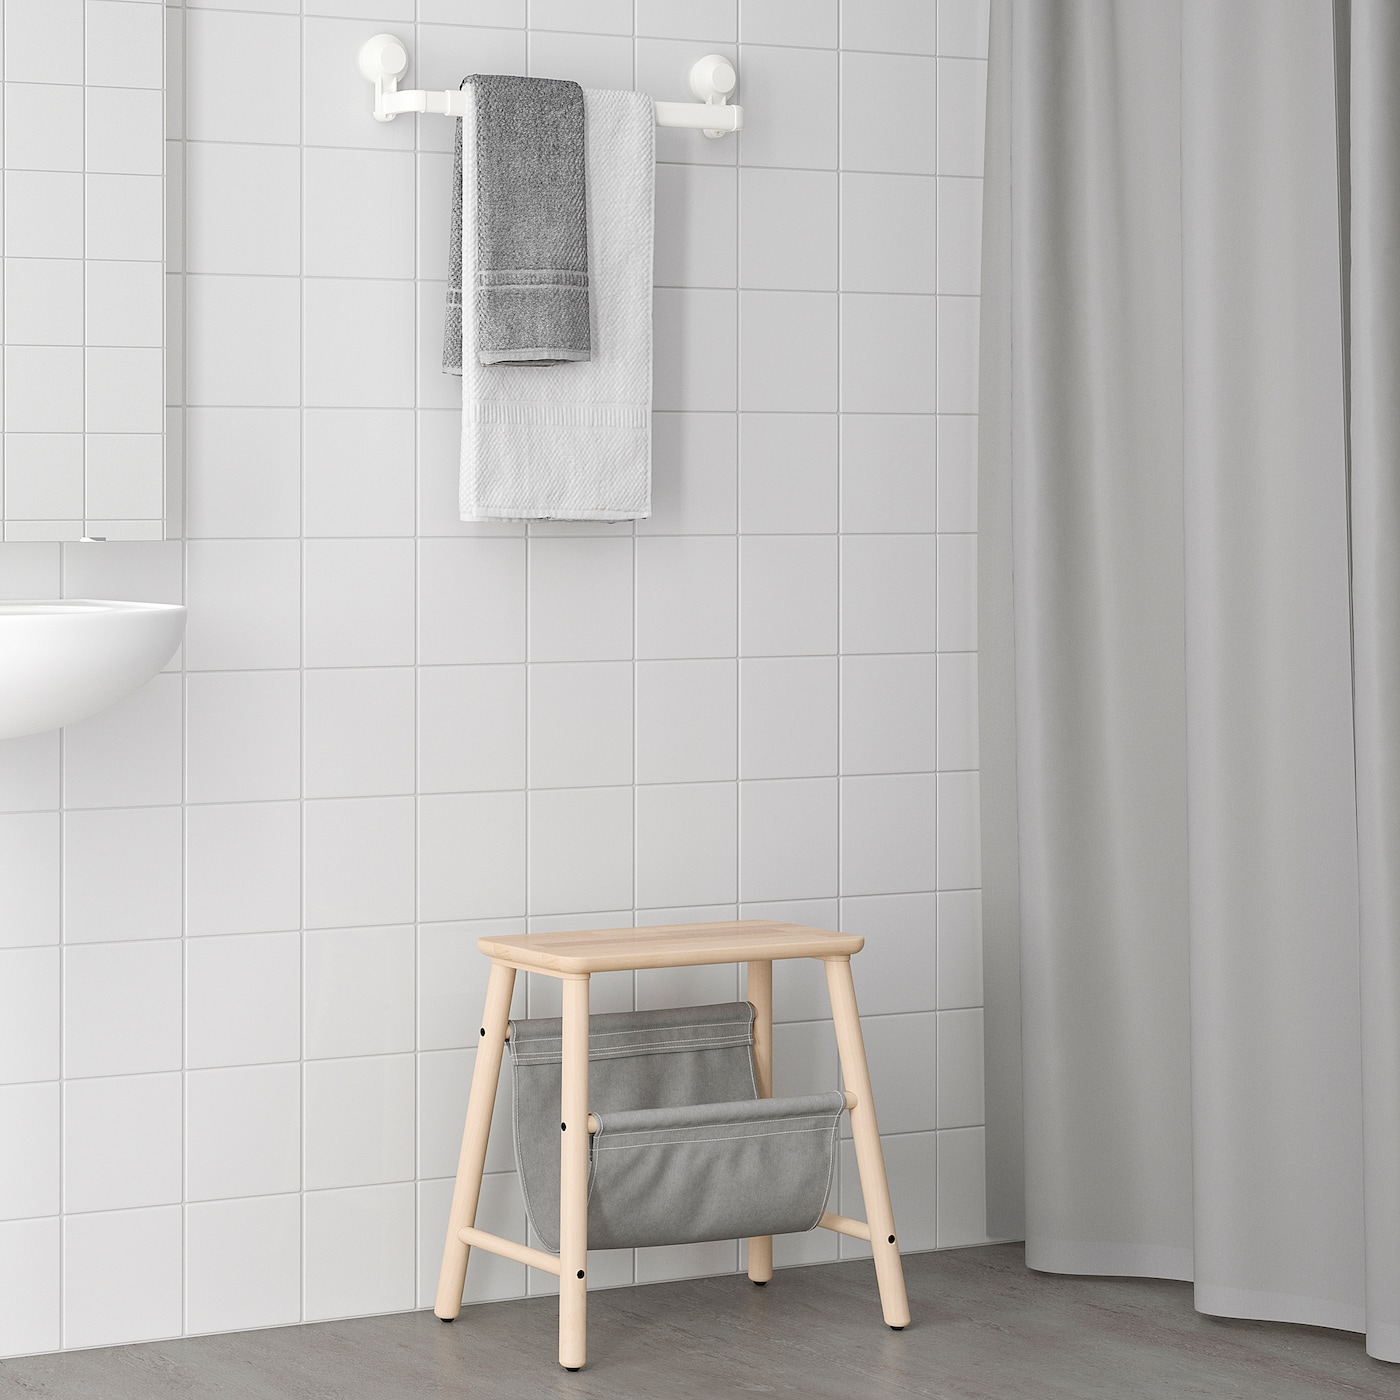 TISKEN Towel rack with suction cup, white